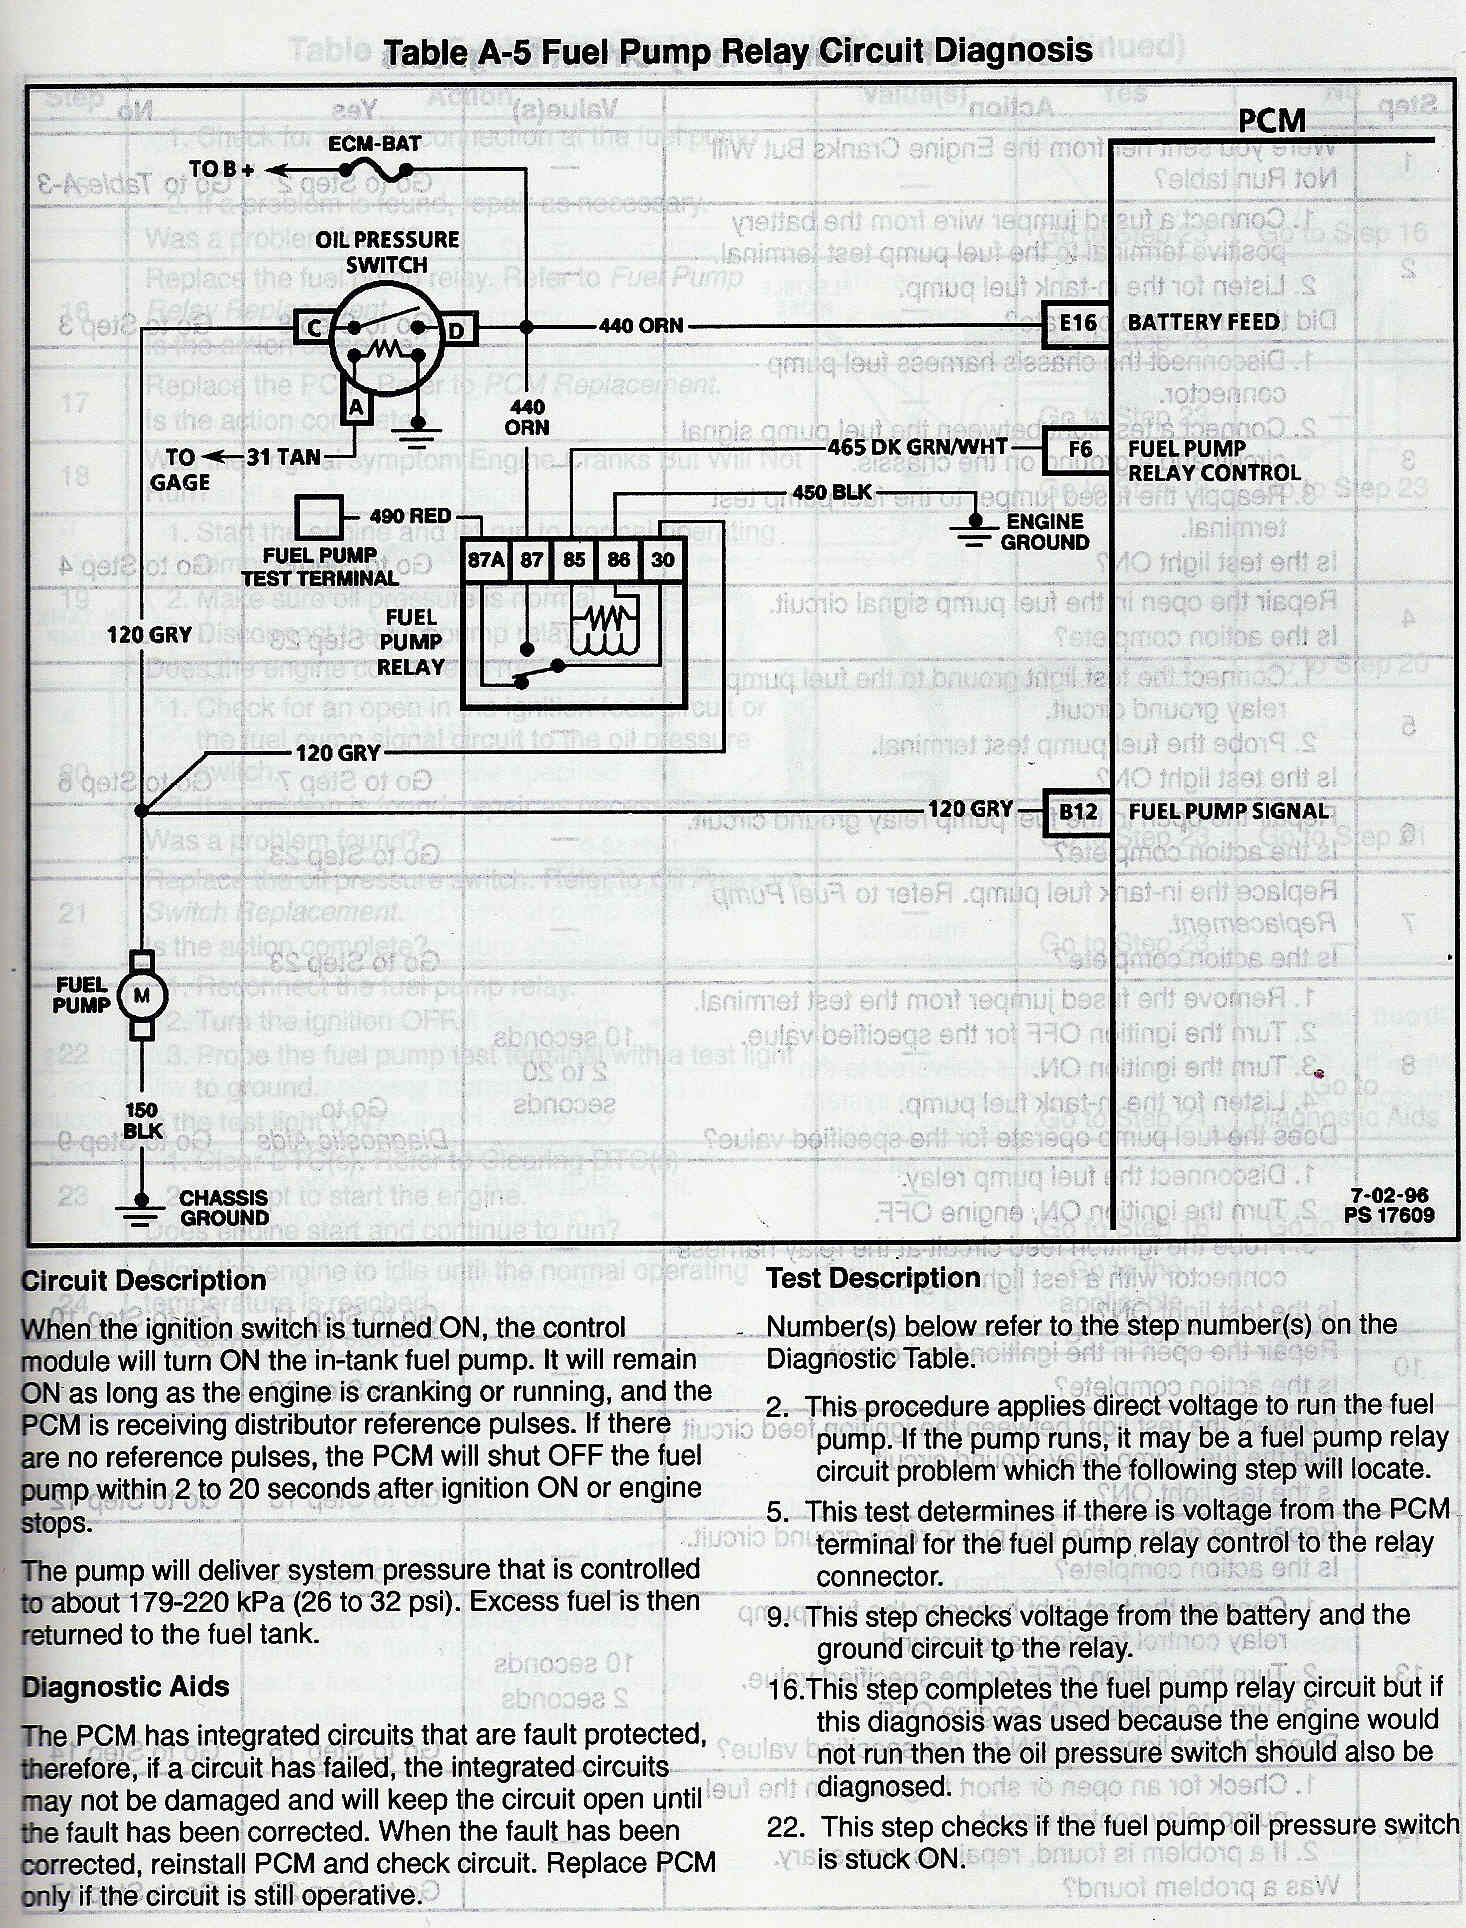 2010 05 11_105835_Scan0001 fleetwood providence battery wiring diagram wiring diagrams Typical RV Wiring Diagram at webbmarketing.co